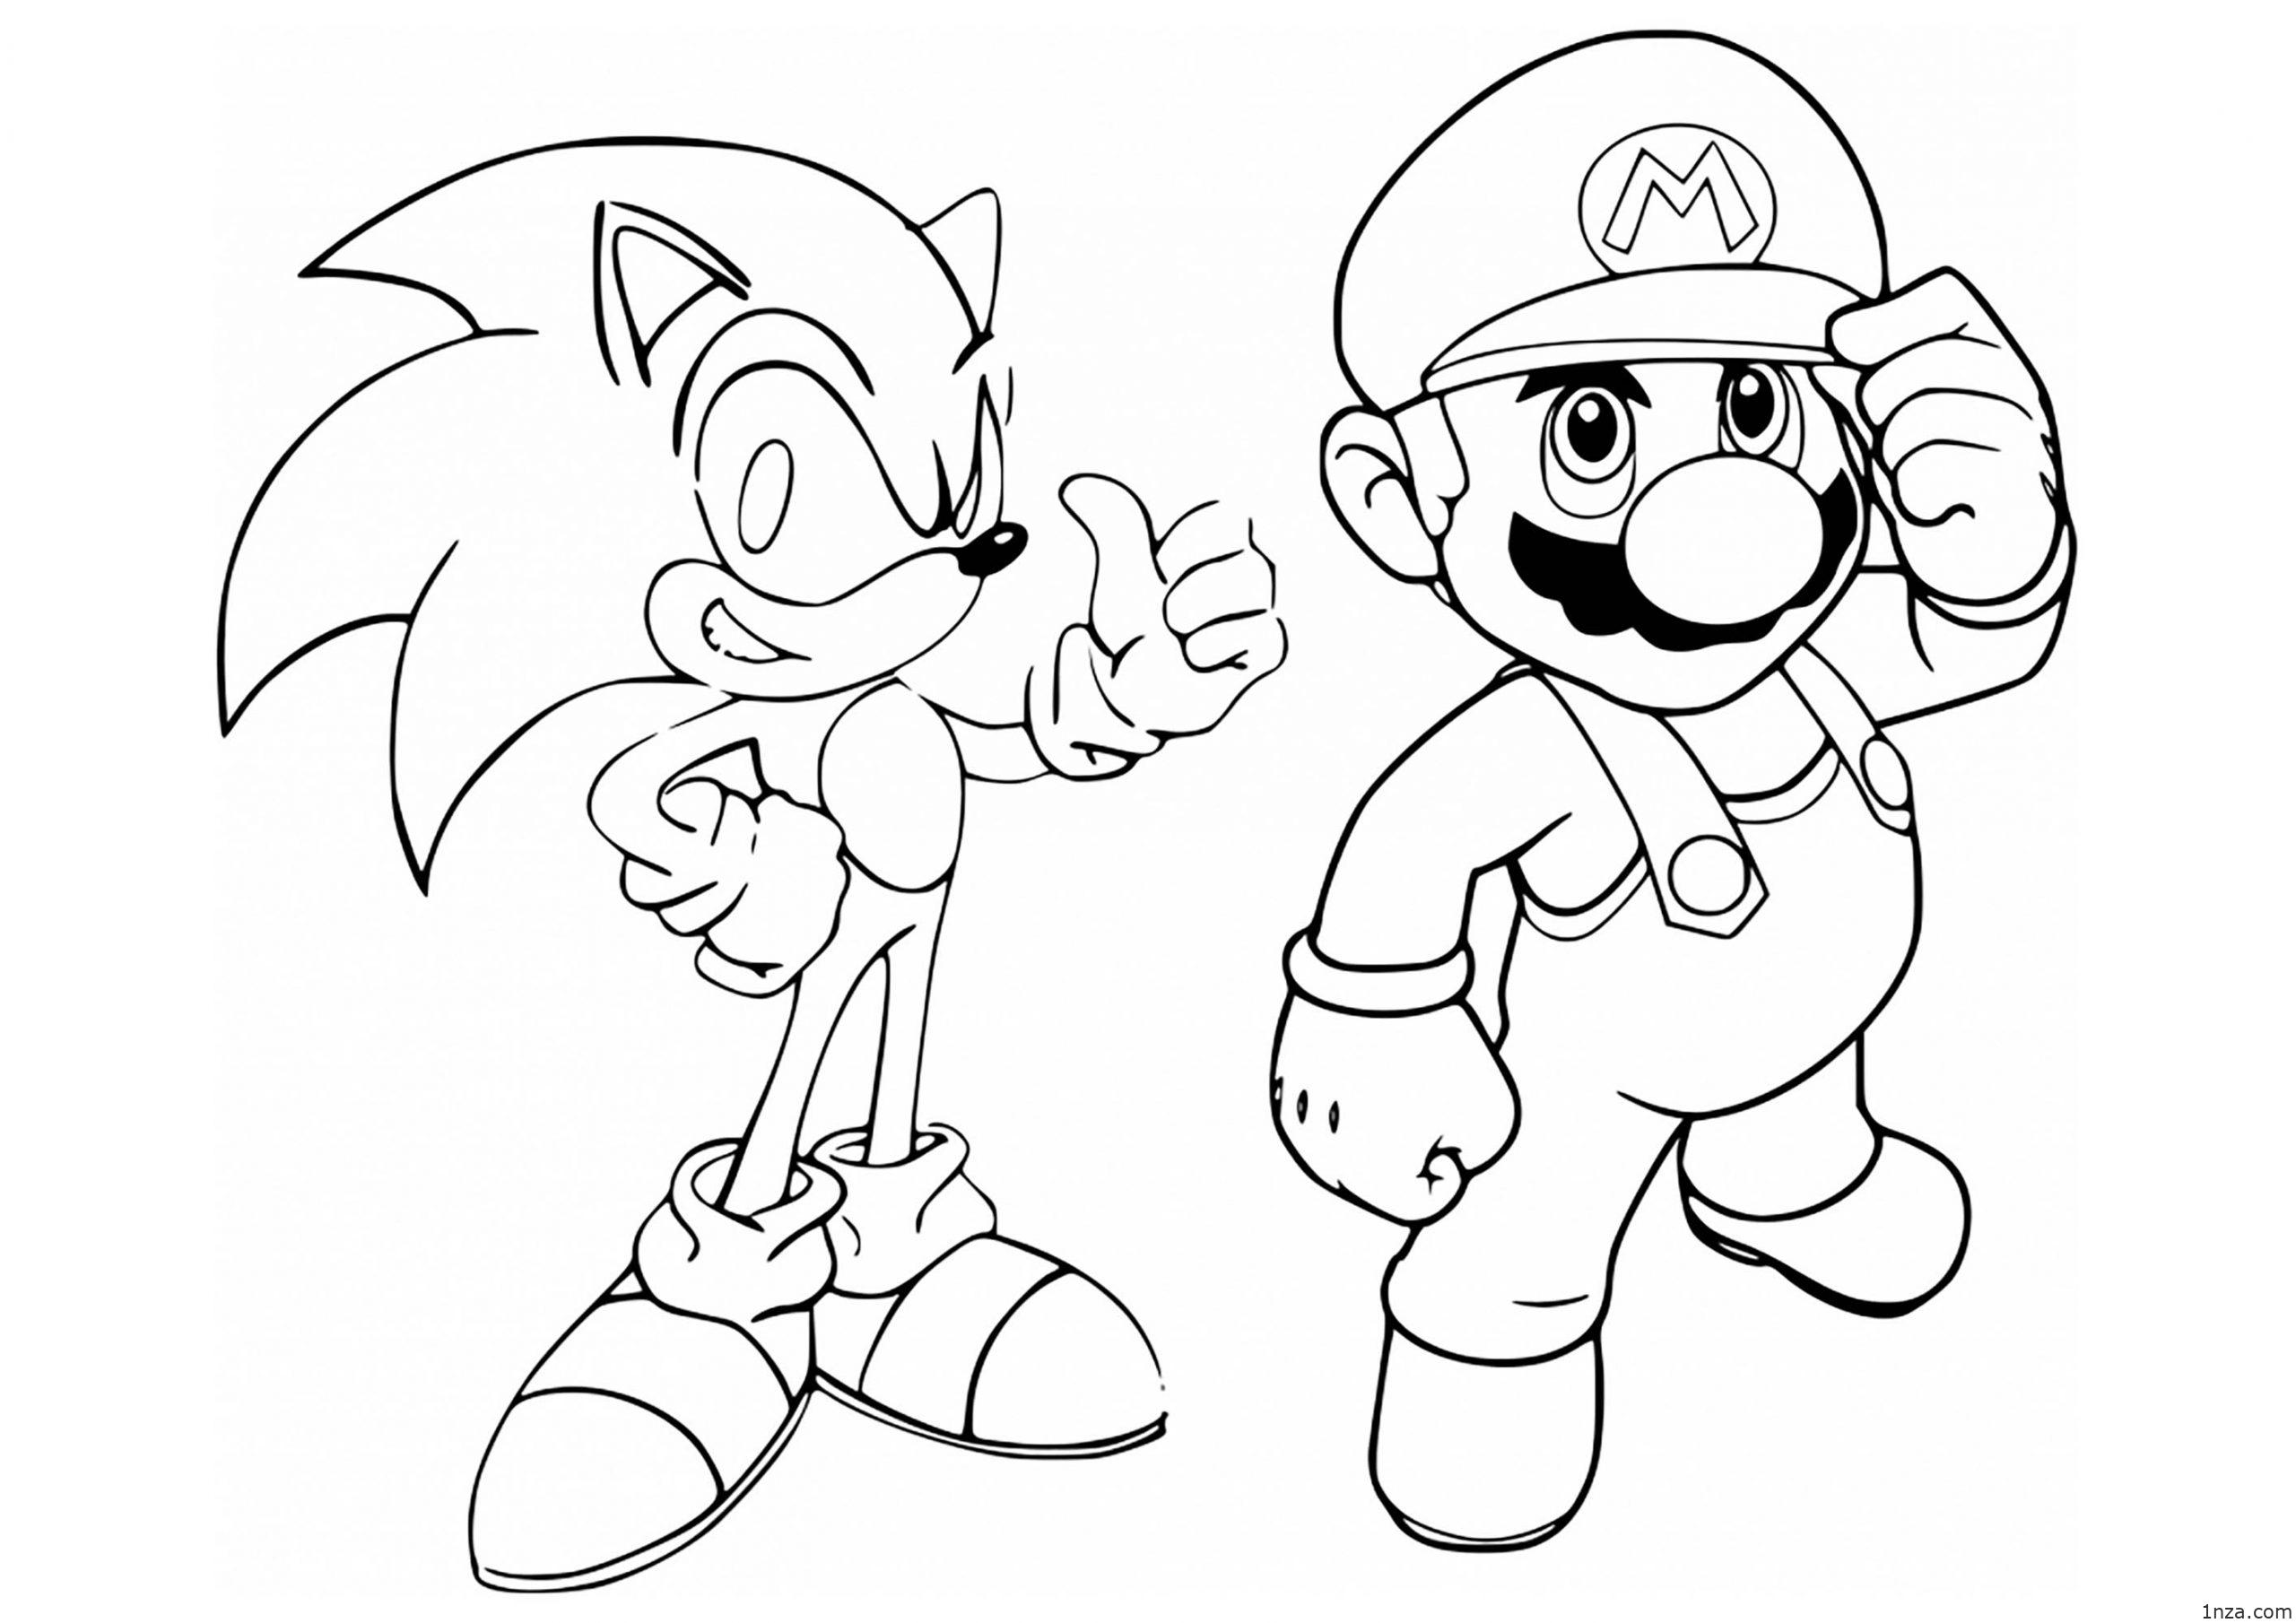 sonic the hedgehog images to color sonic boom coloring pages at getdrawings free download color sonic to the images hedgehog